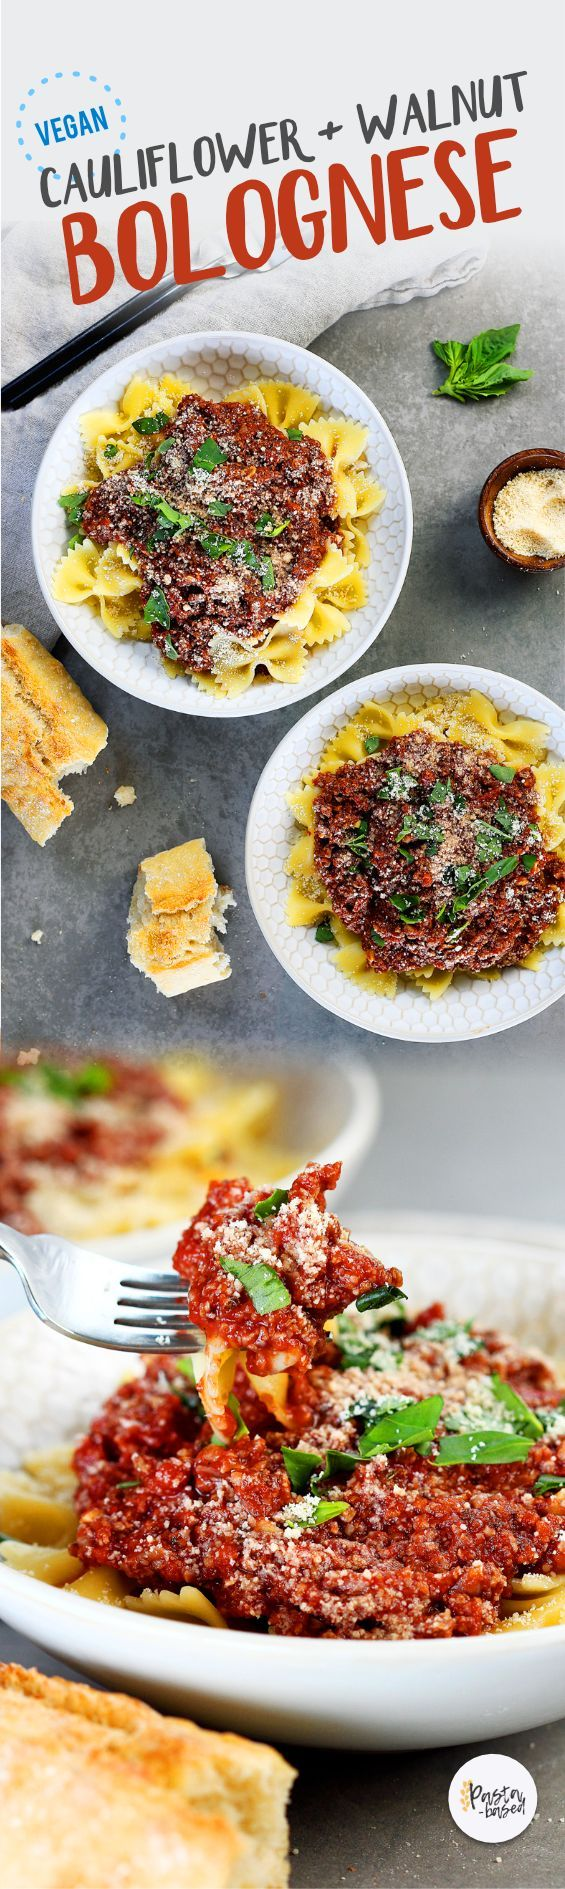 "This vegan/vegetarian bolognese sauce is made with caulifower, walnuts, and marinara sauce. It's so easy to make, requires less than 10 ingredients and 30 minutes. Chunky, flavorful, ""meaty,"" healthy, and perfect for pasta night."